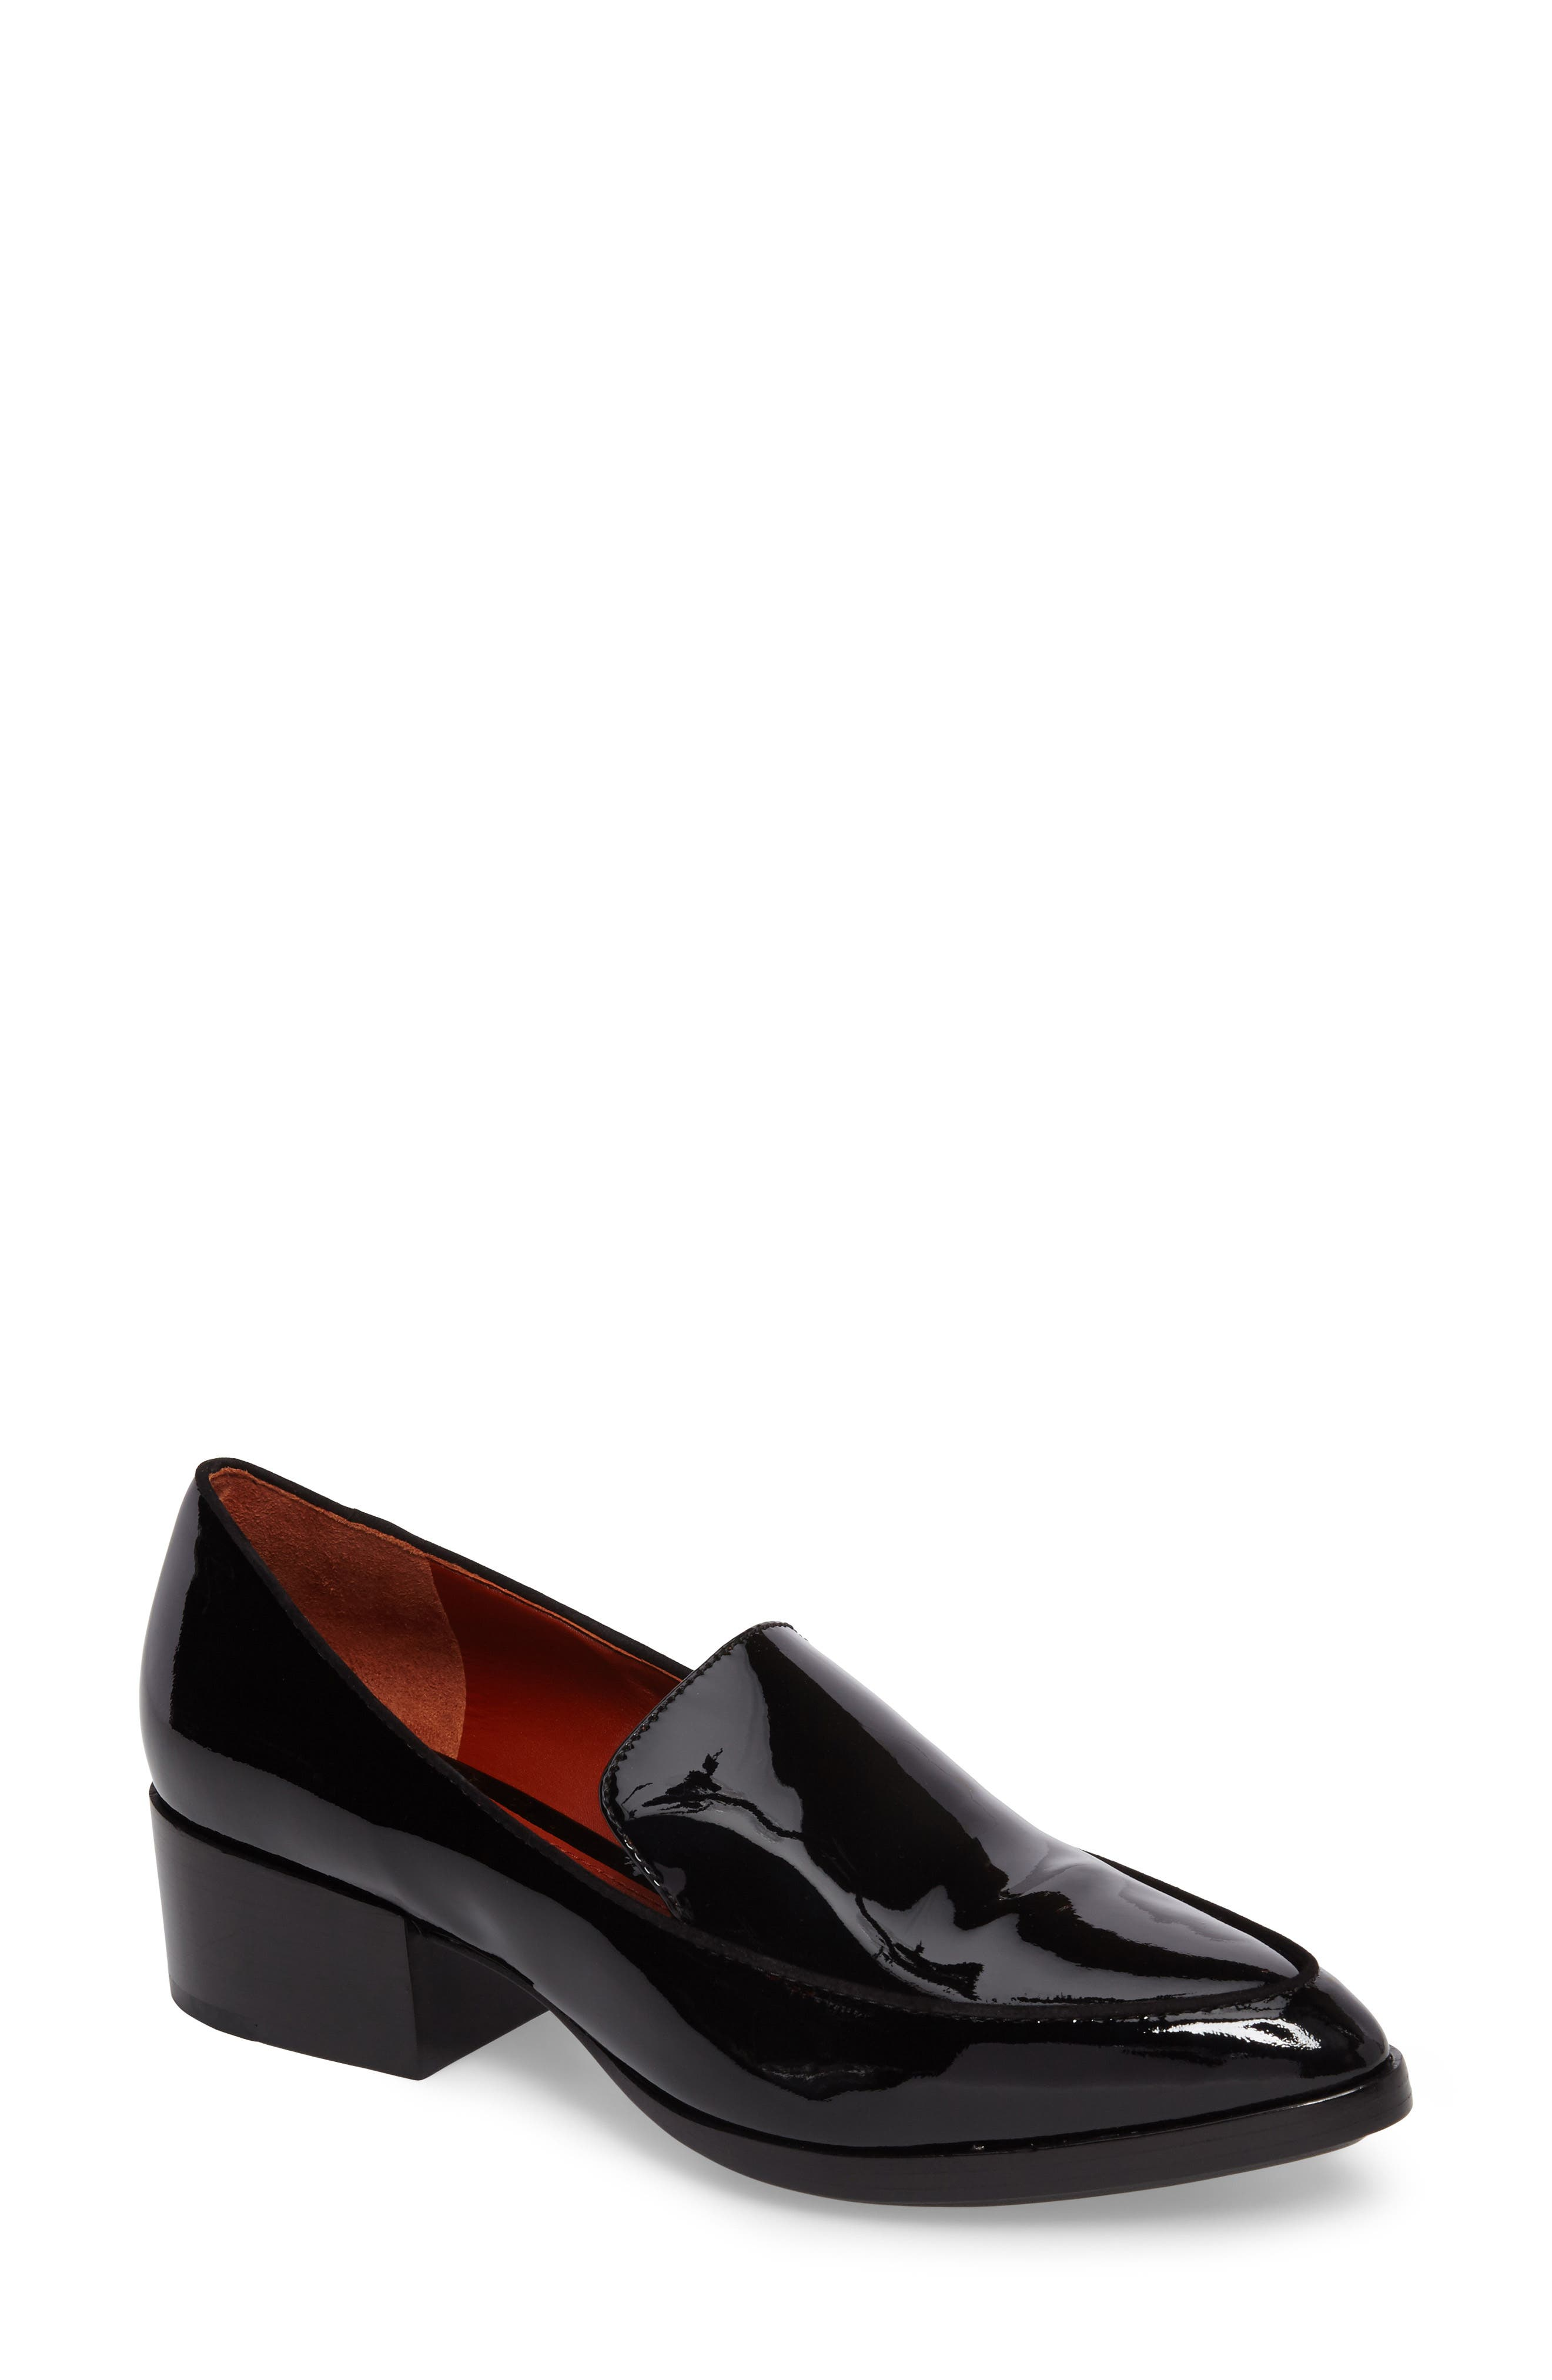 3.1 PHILLIP LIM Quinn Loafer